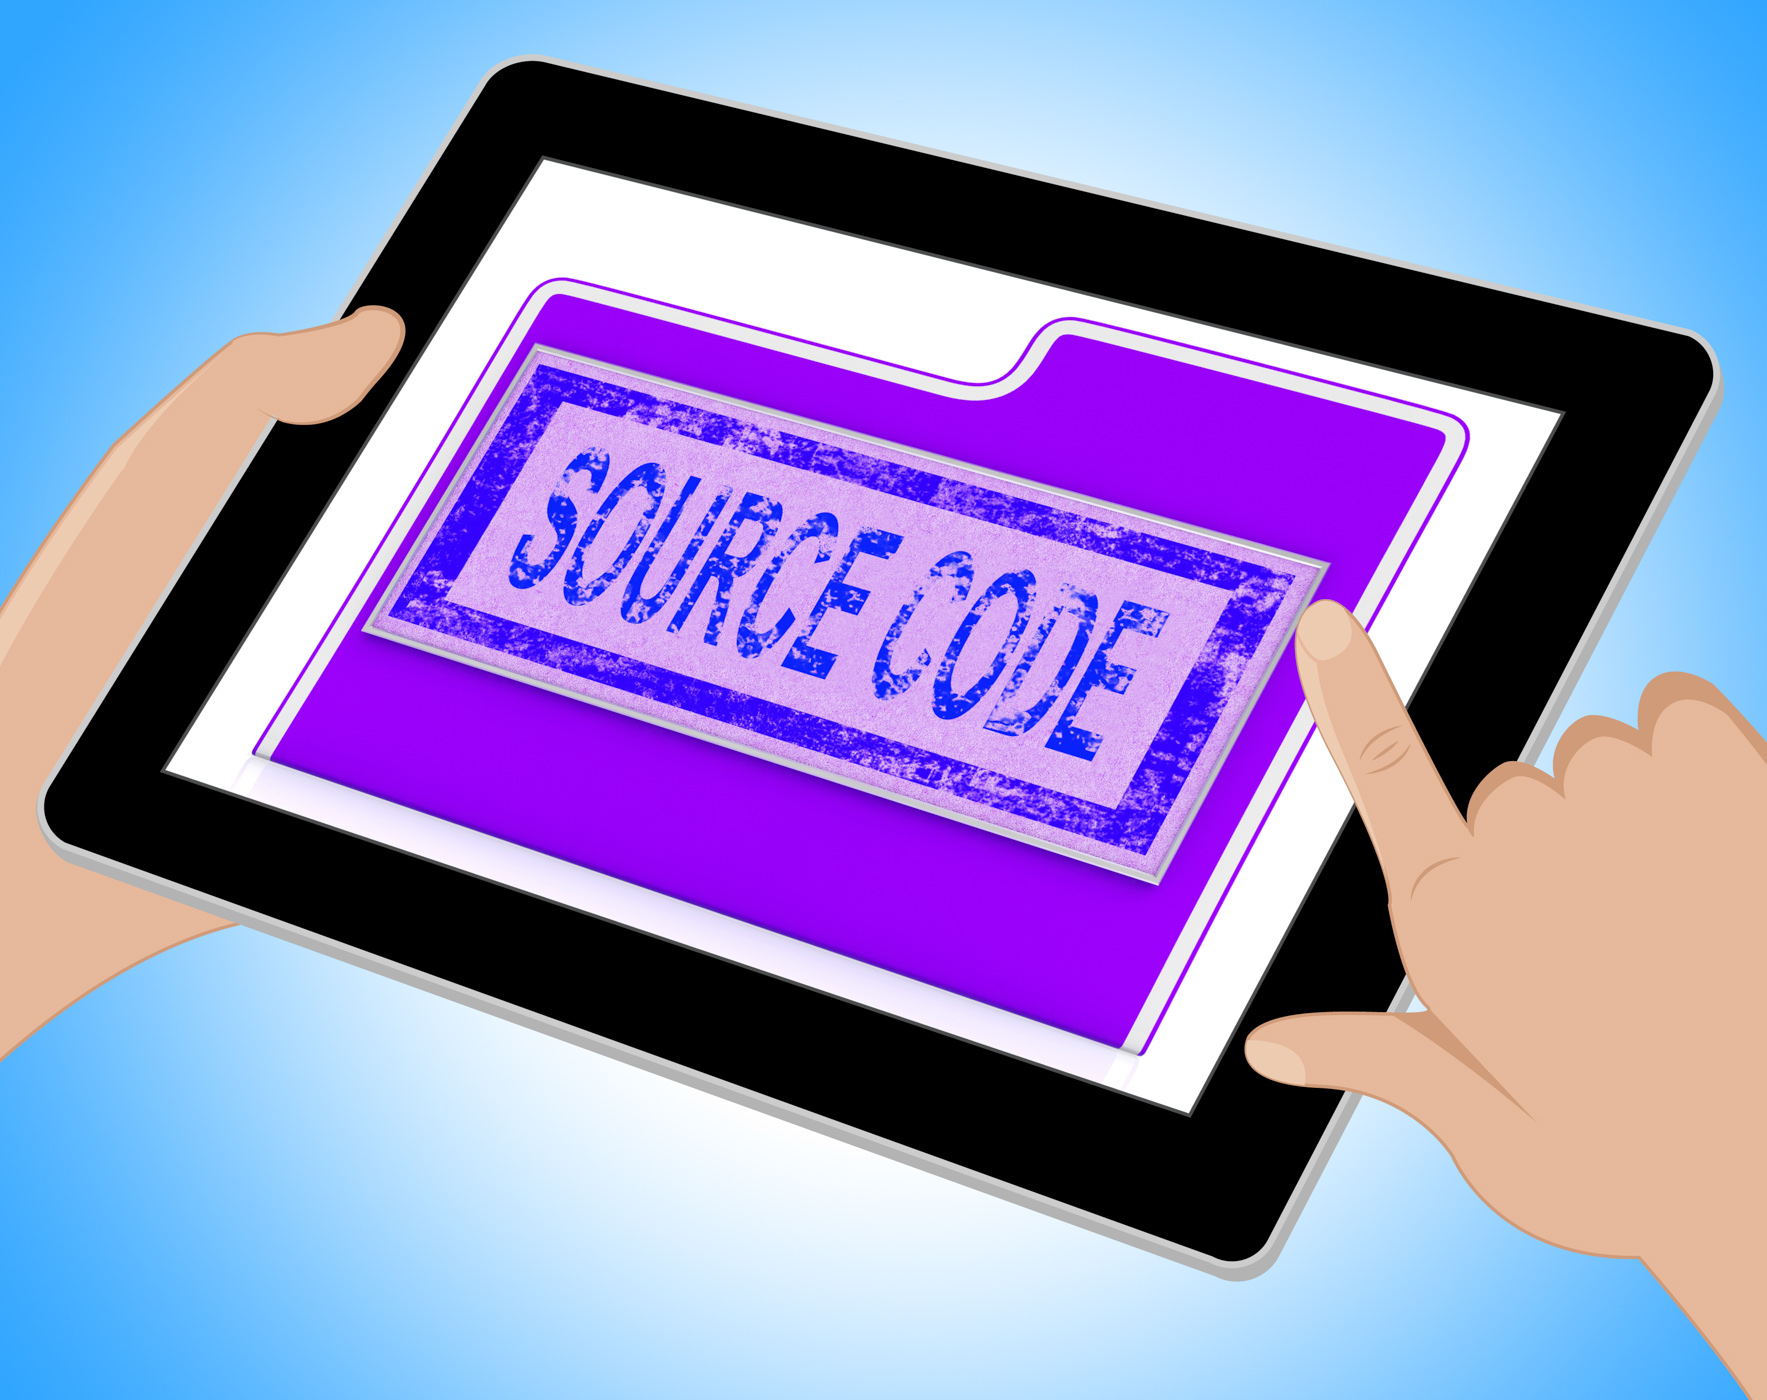 Source code indicates administration organized and computer tablet photo